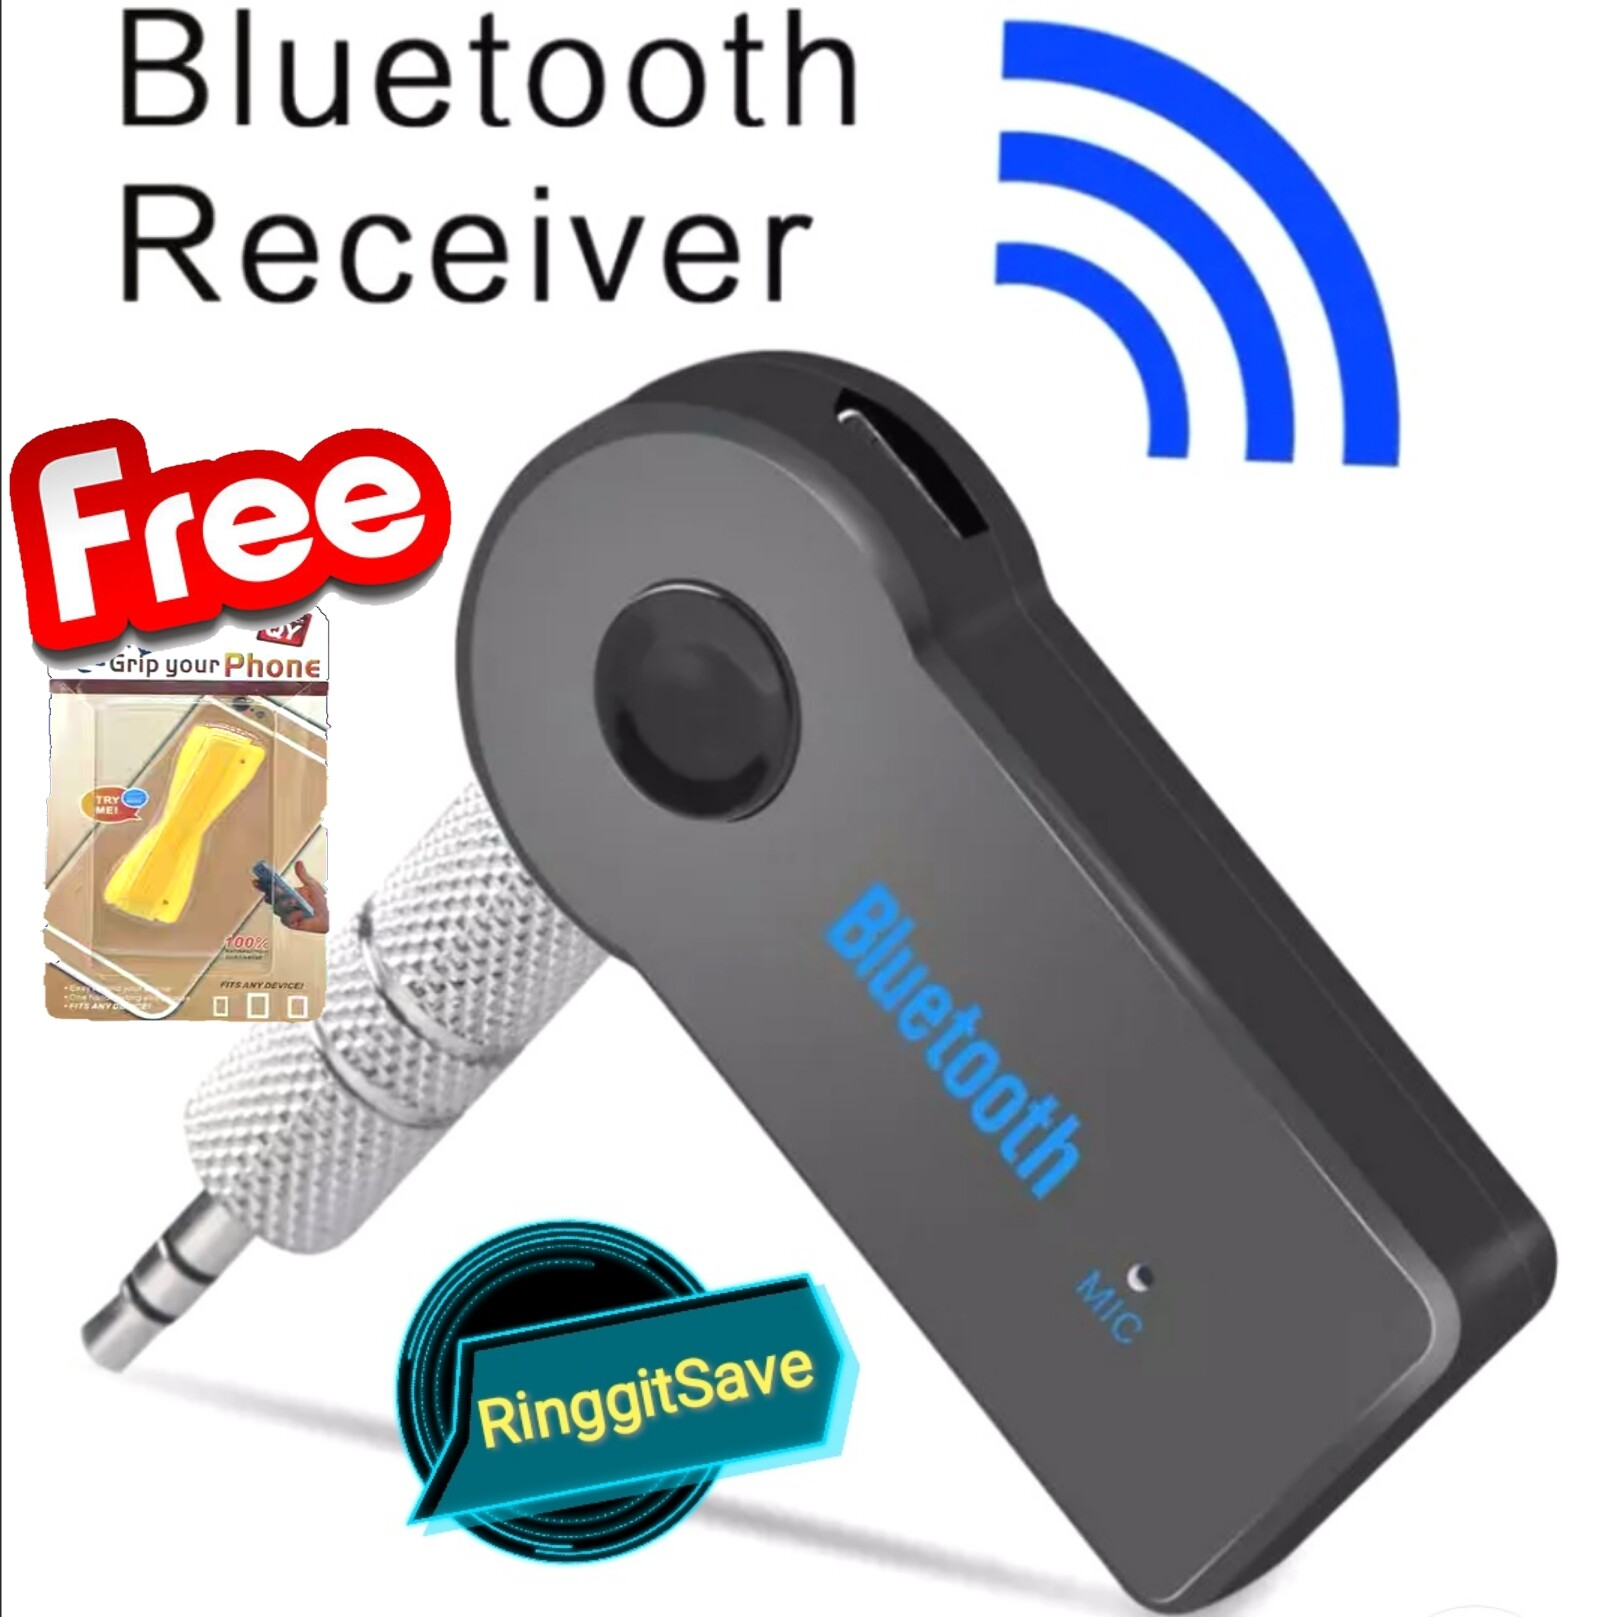 Wireless Bluetooth 3.5mm AUX Audio Stereo Music Home Car Receiver Adapter Mic Hands-Free Universal Car Kit With Free Gift